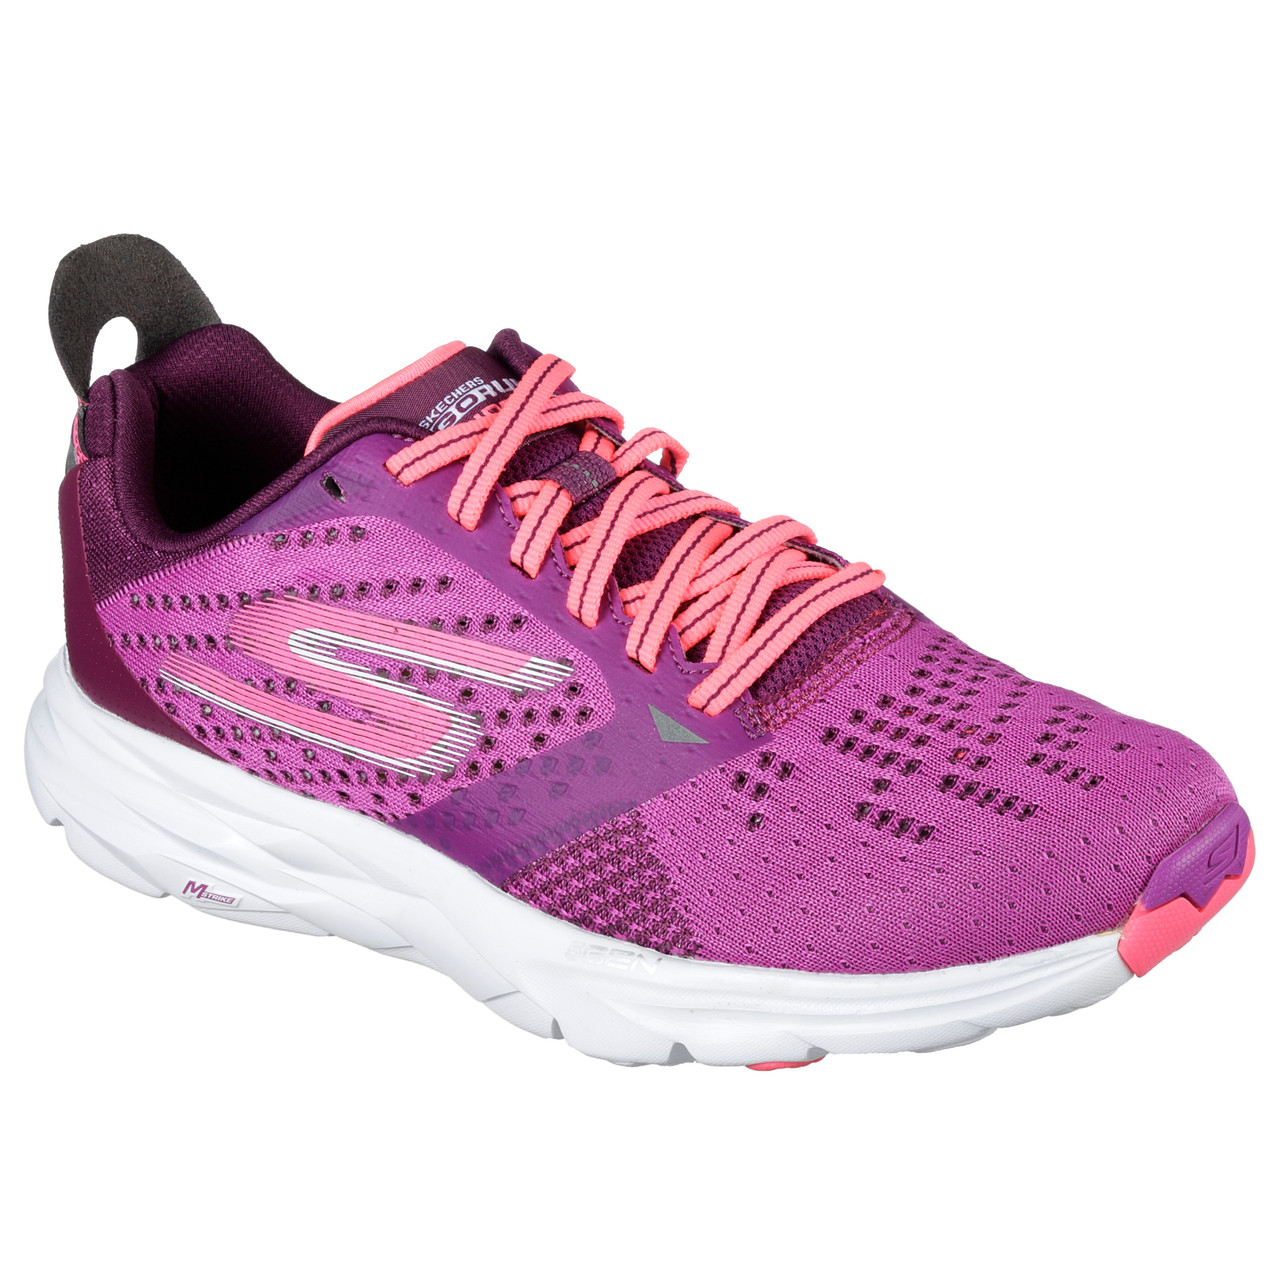 2cb81fd22193 Skechers Women s GoRun Ride 6 Shoe